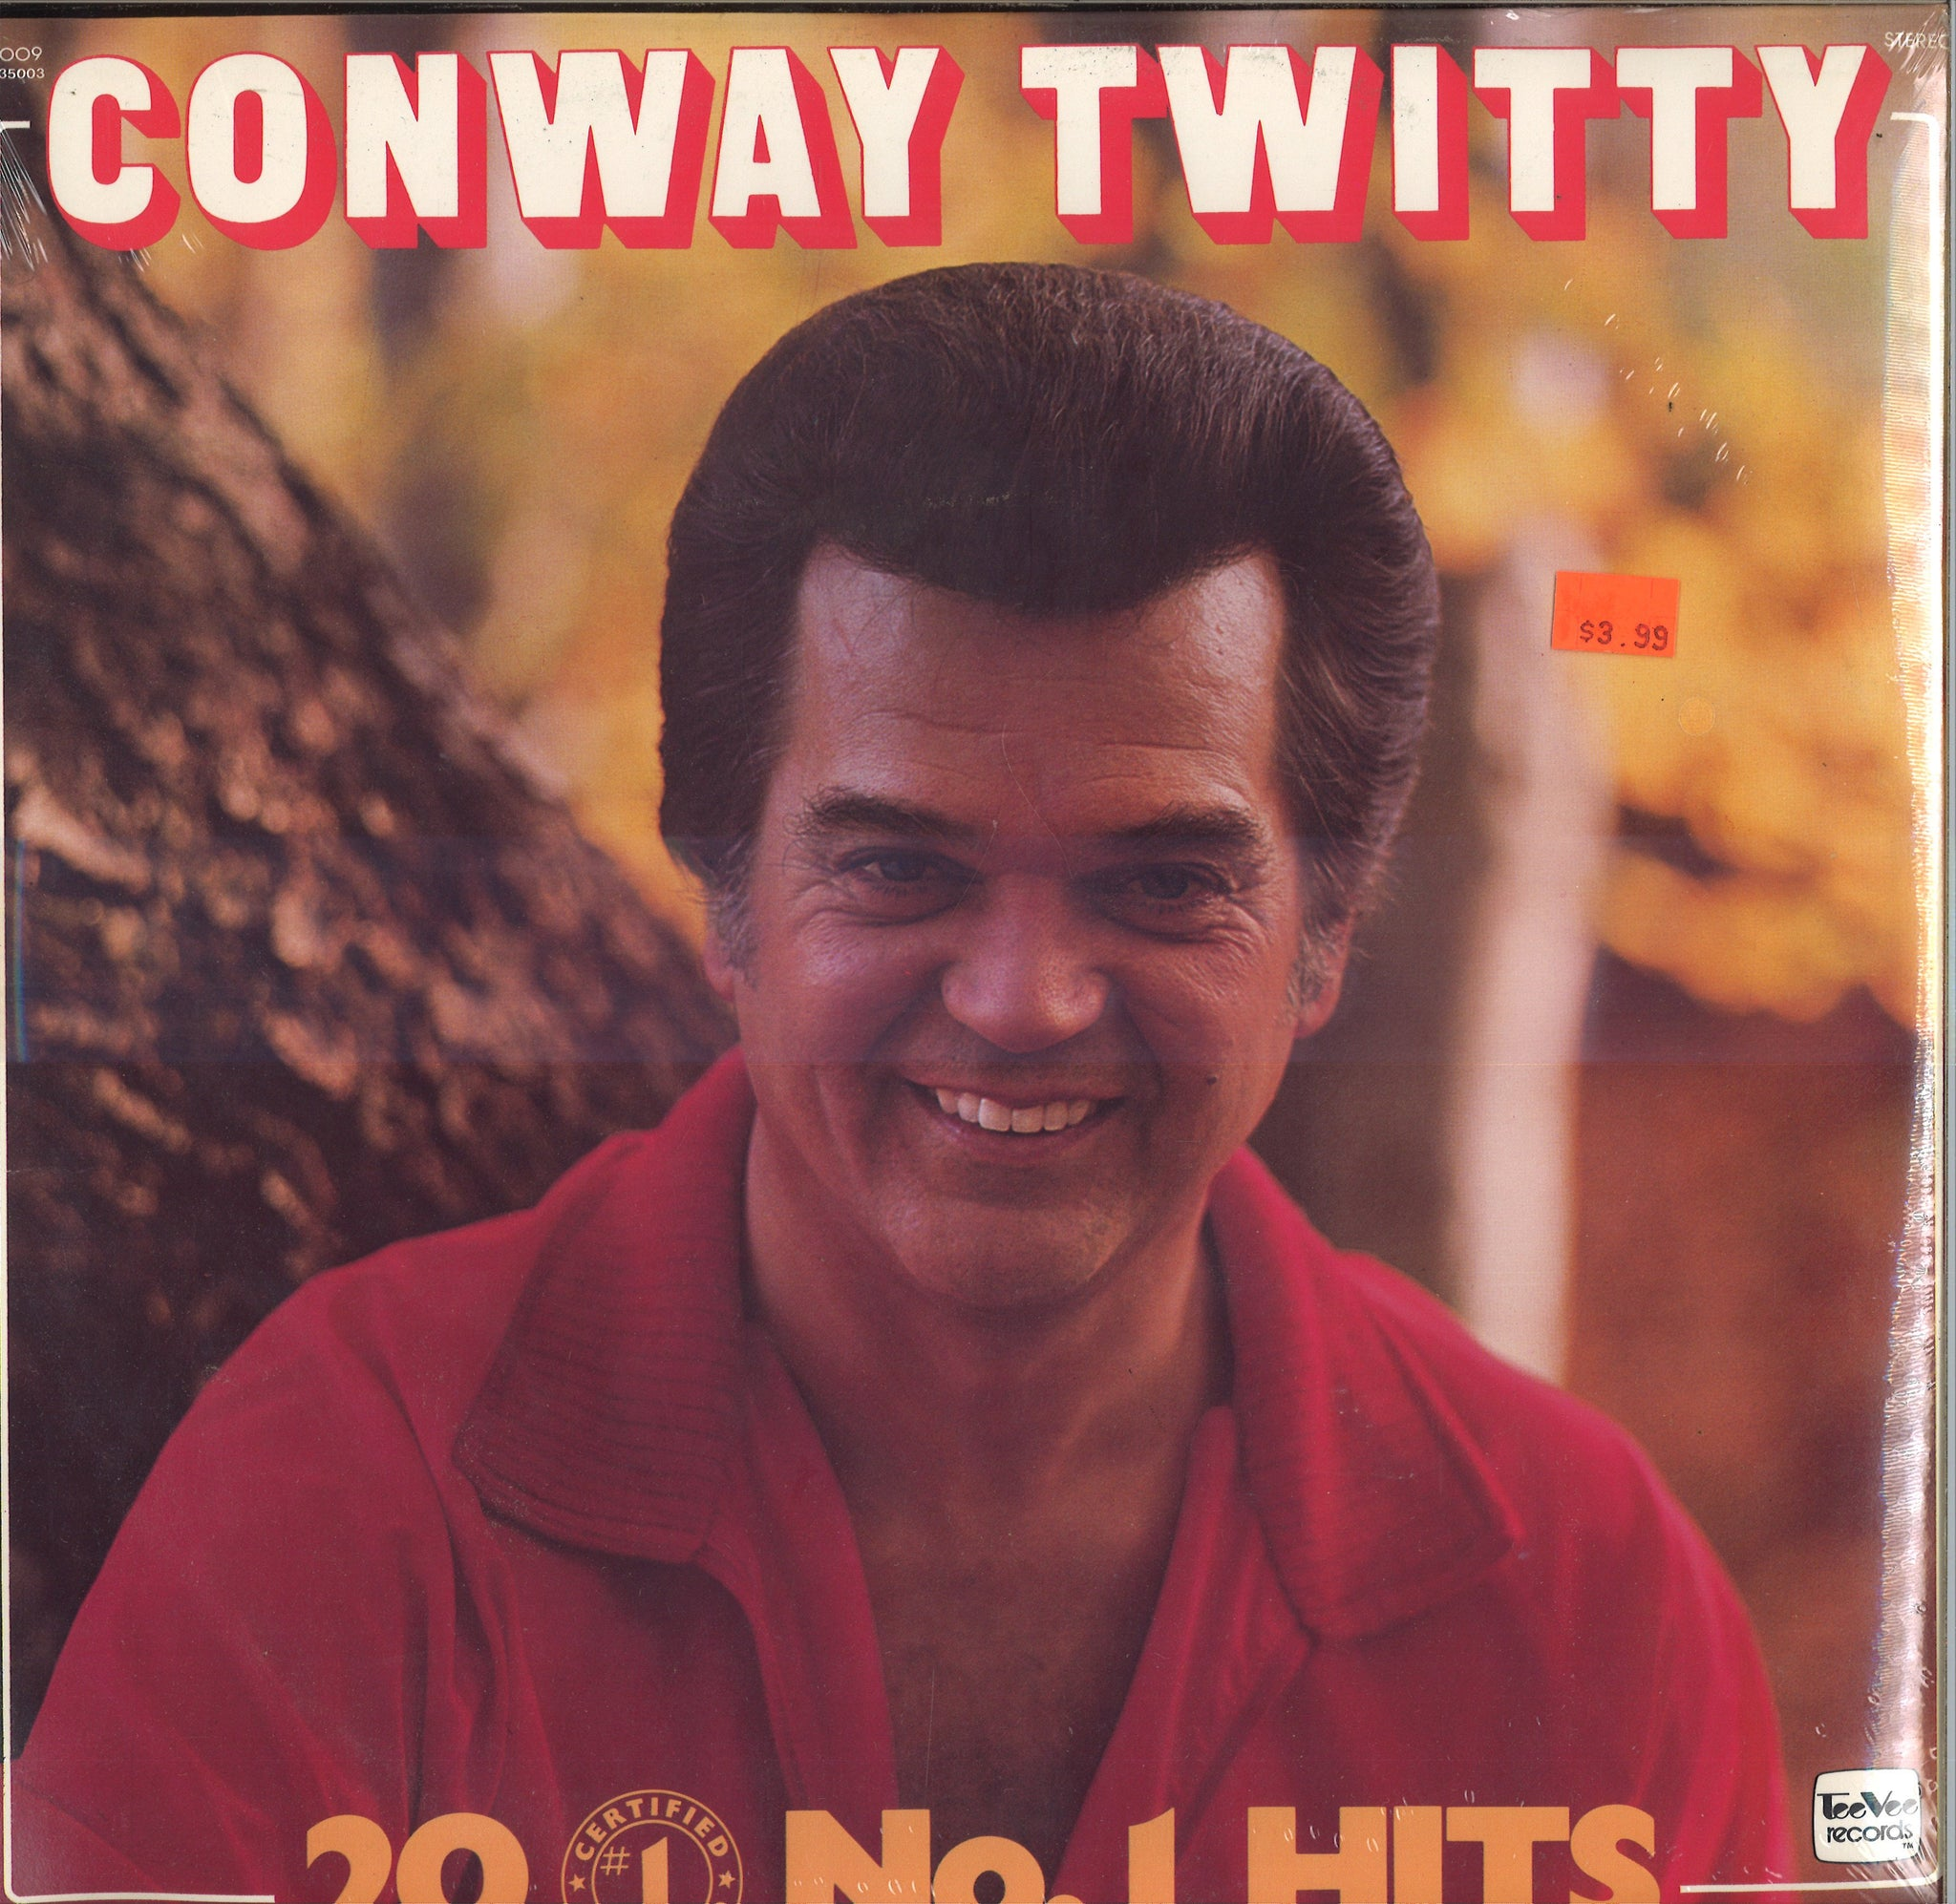 Conway Twitty 20 Certified No. 1-Hits